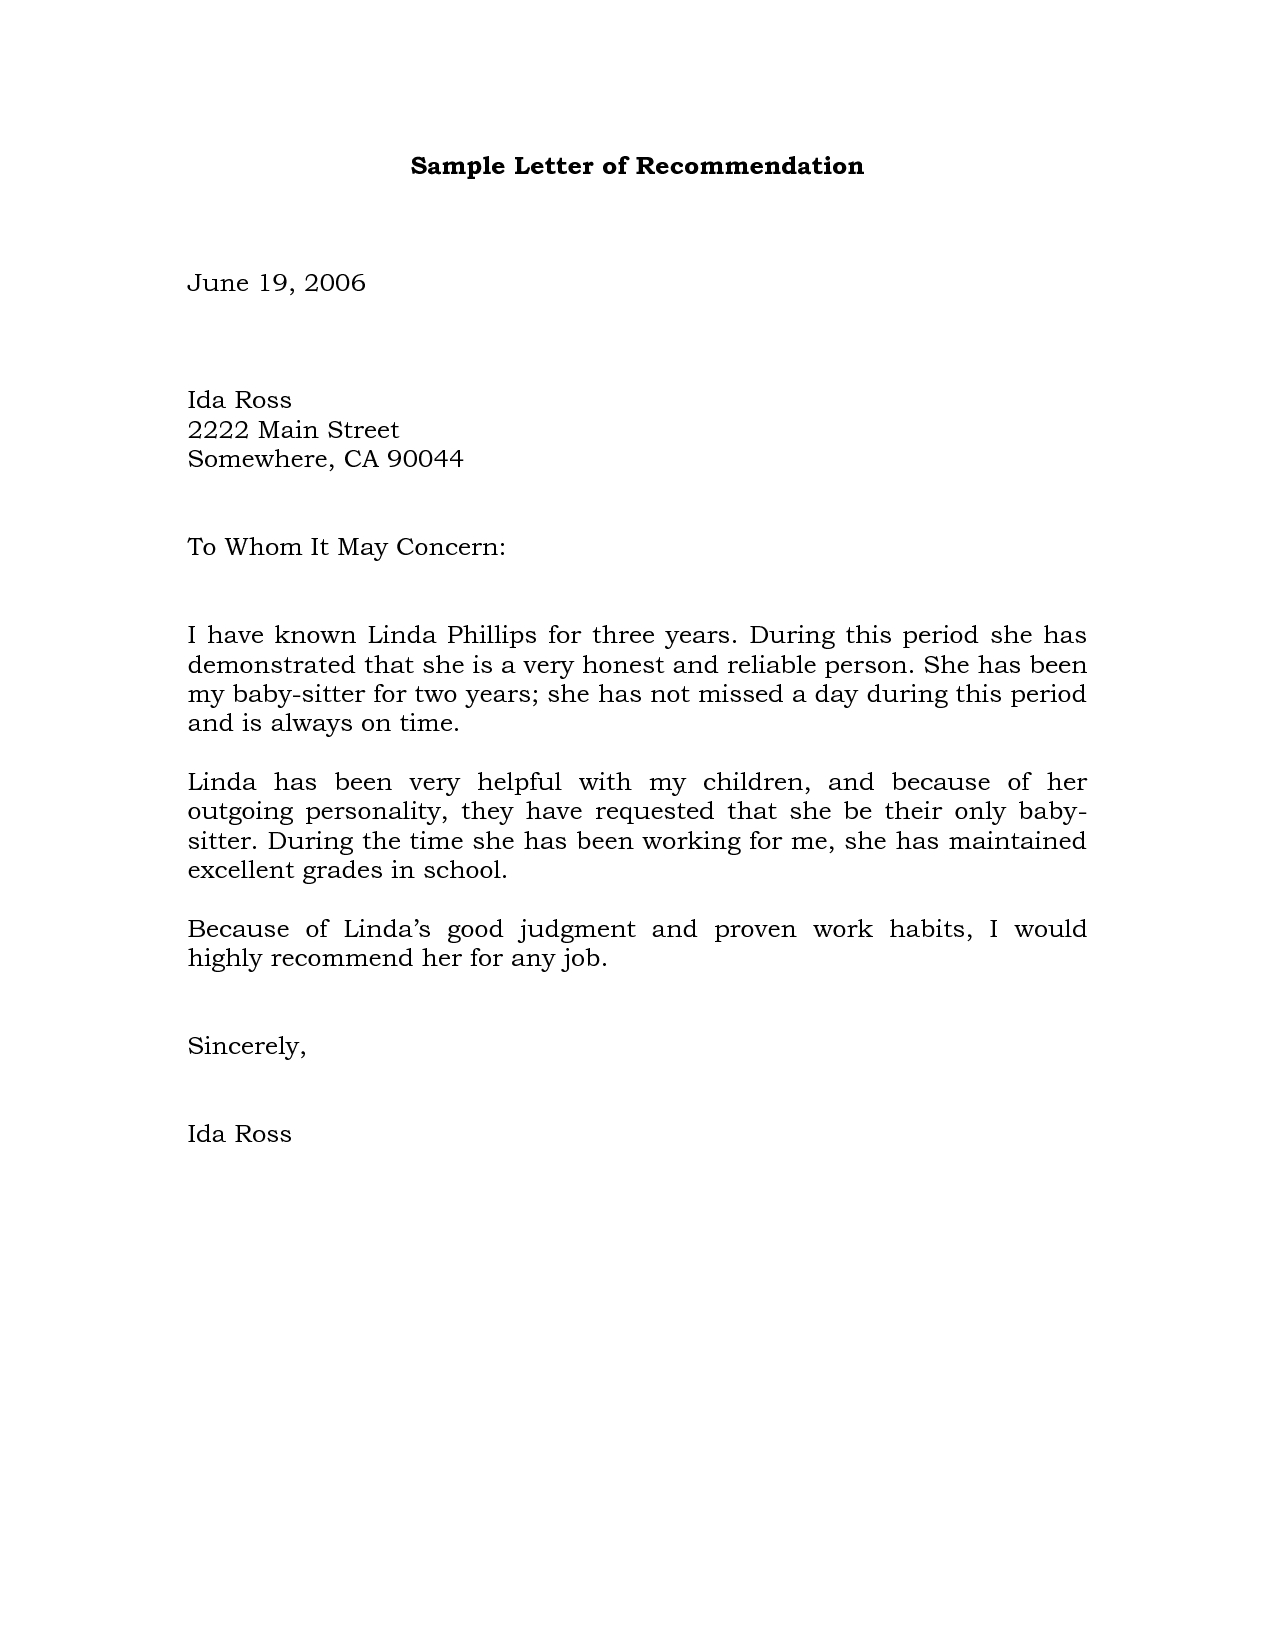 Proof Of Child Support Letter Template - Sample Re Mendation Letter Example Projects to Try